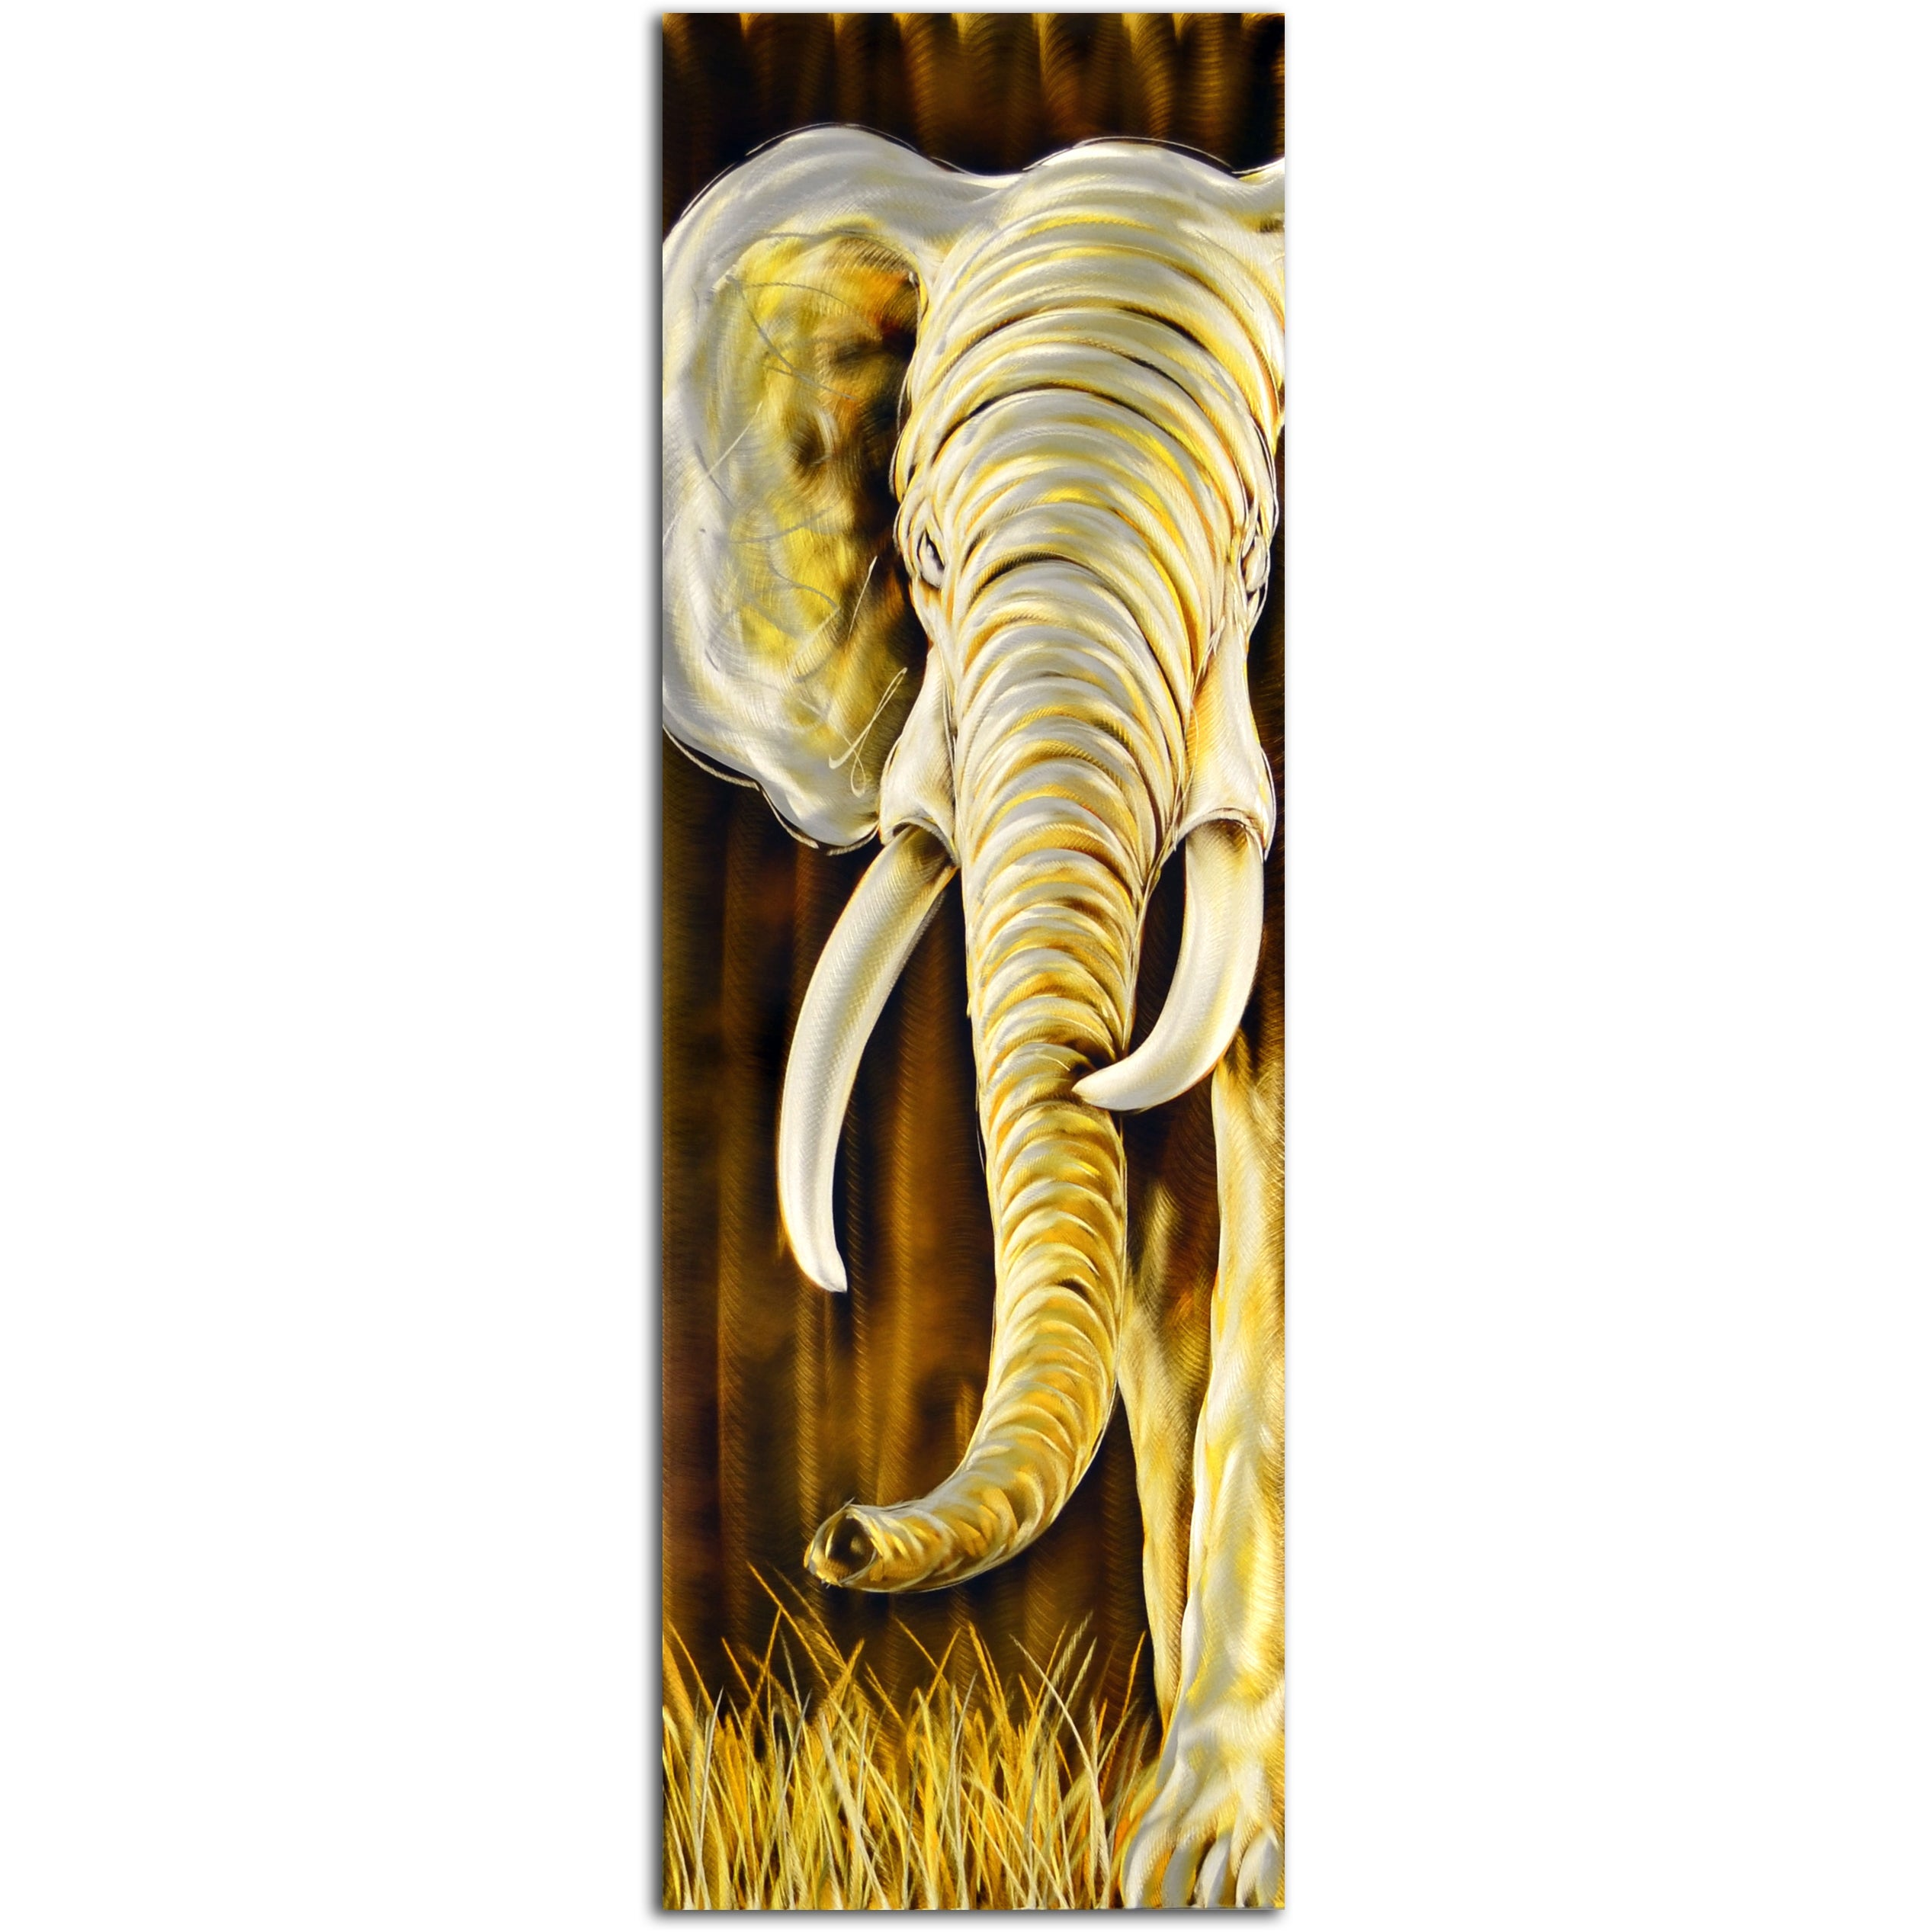 Gold and White Elephants Delight Handmade Metal Wall Art Sculpture ...